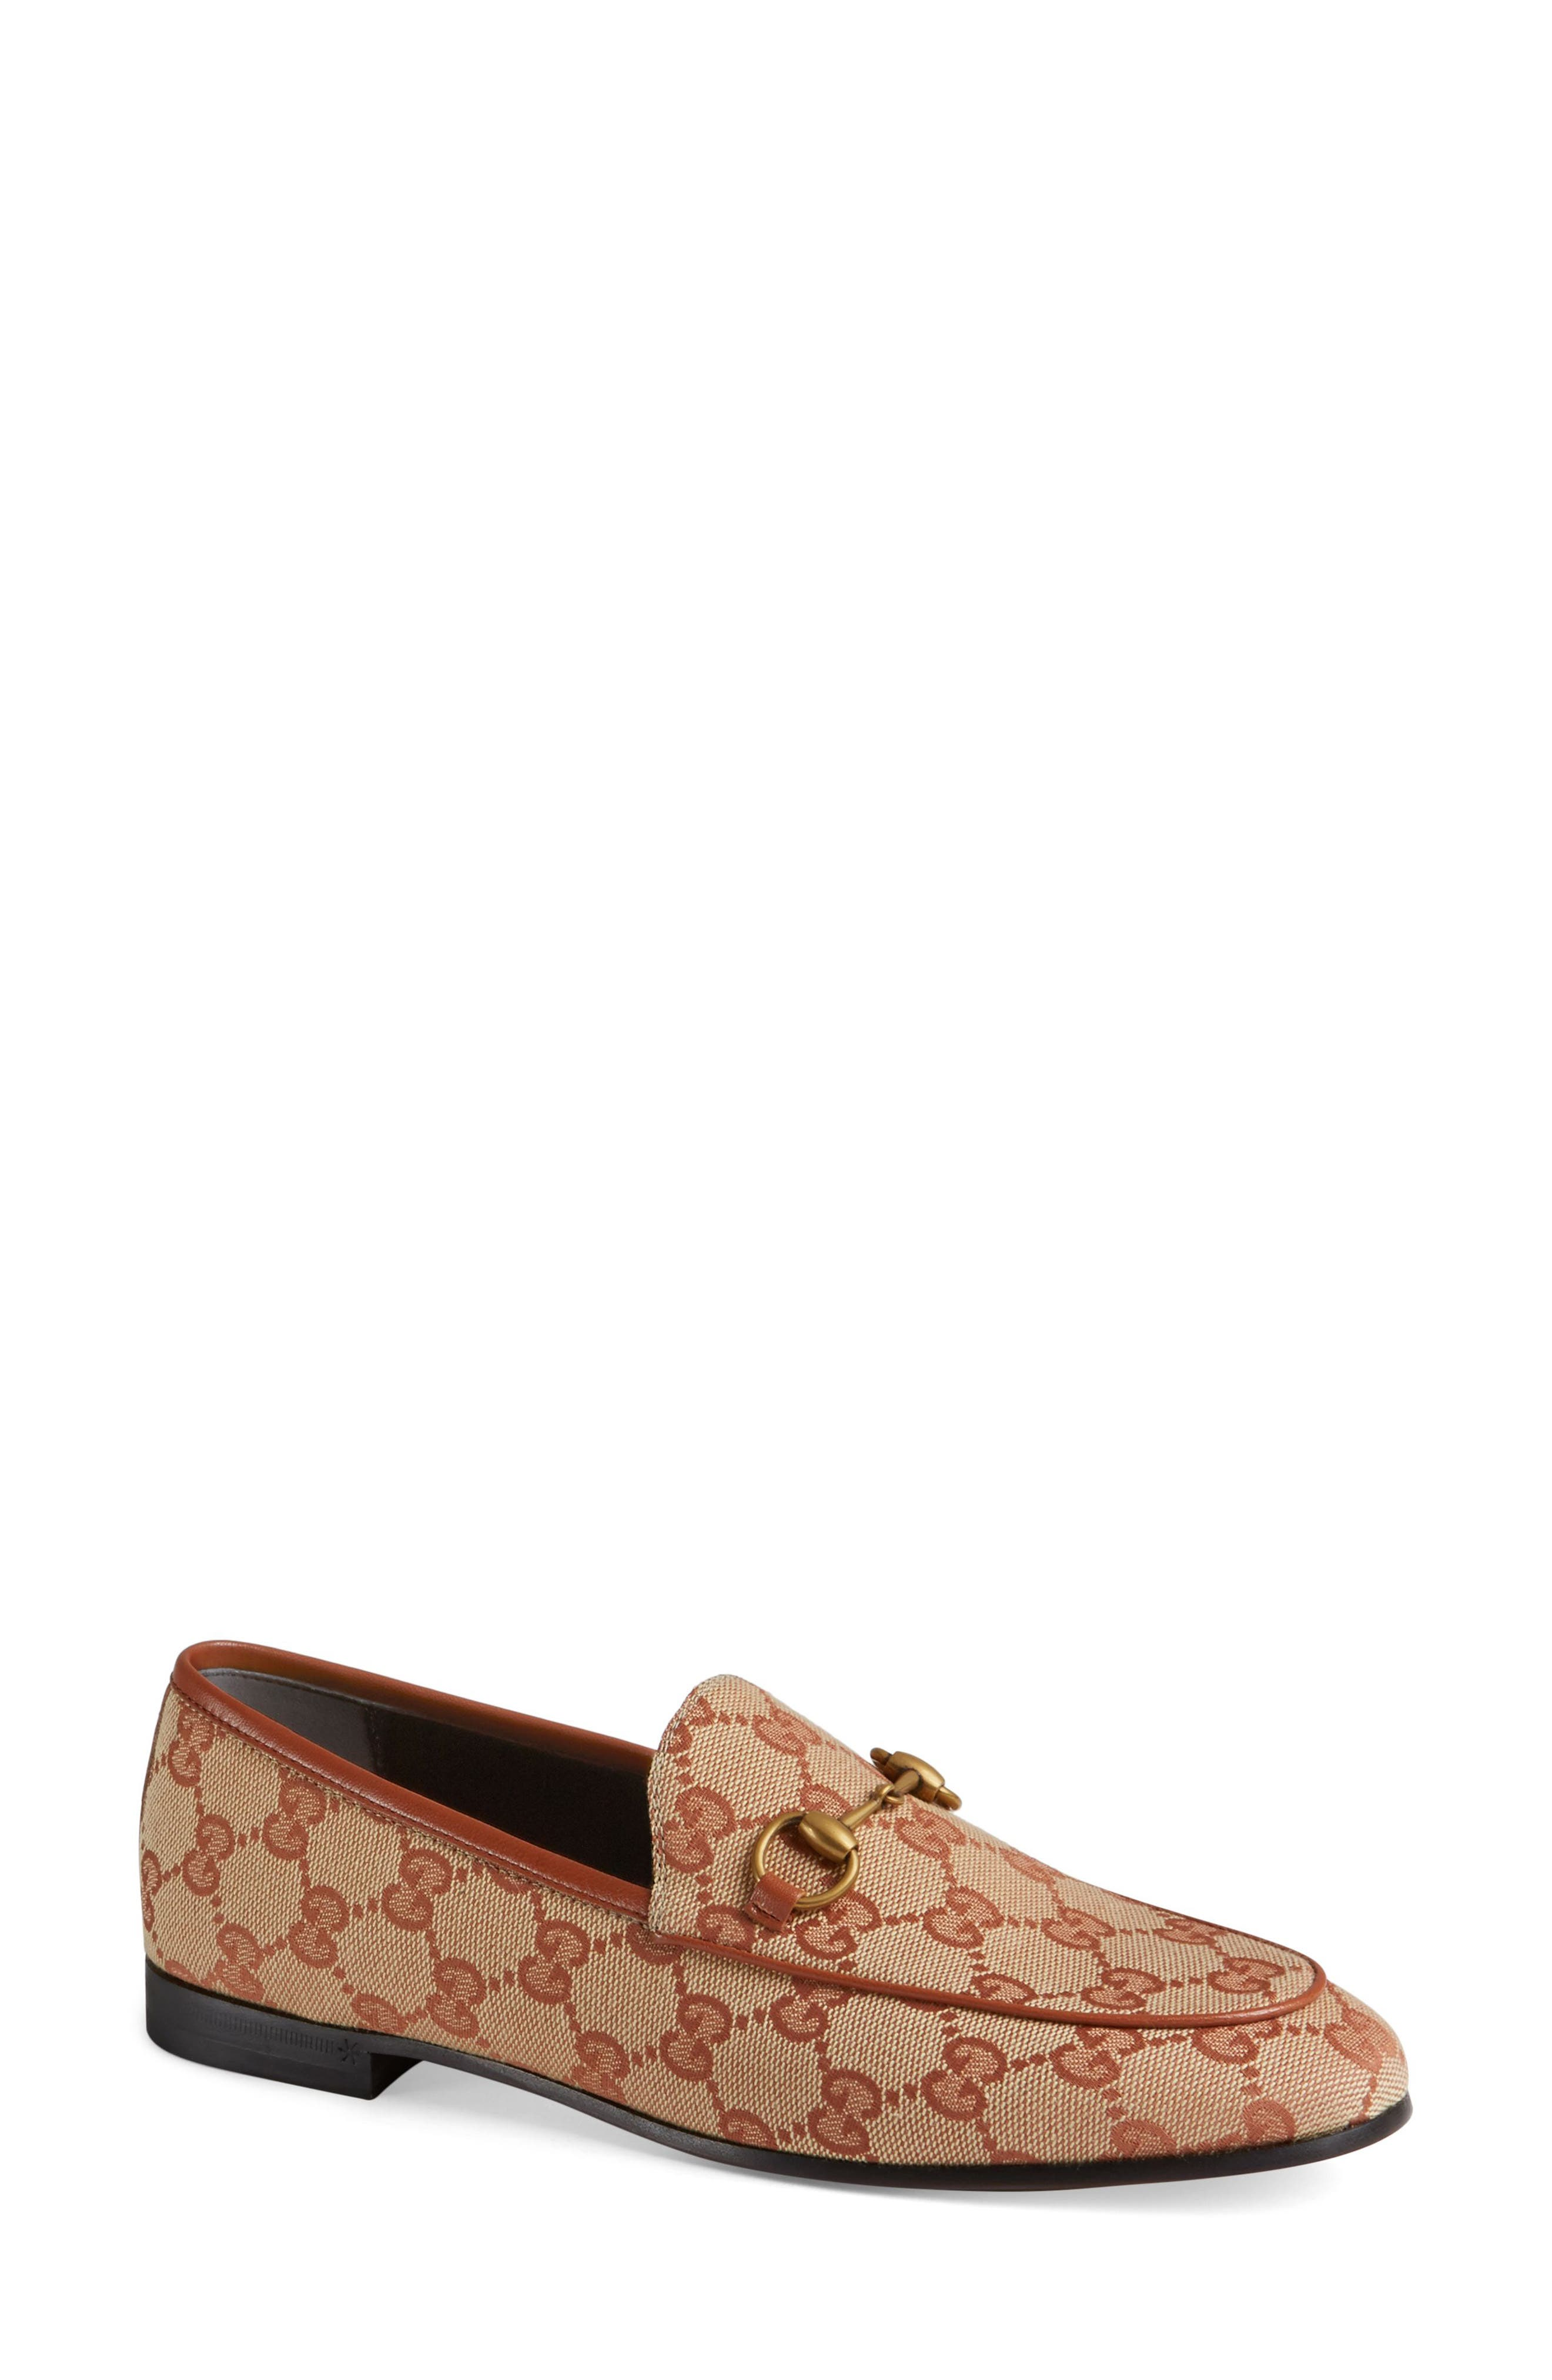 GUCCI, New Jordaan Loafer, Main thumbnail 1, color, BEIGE